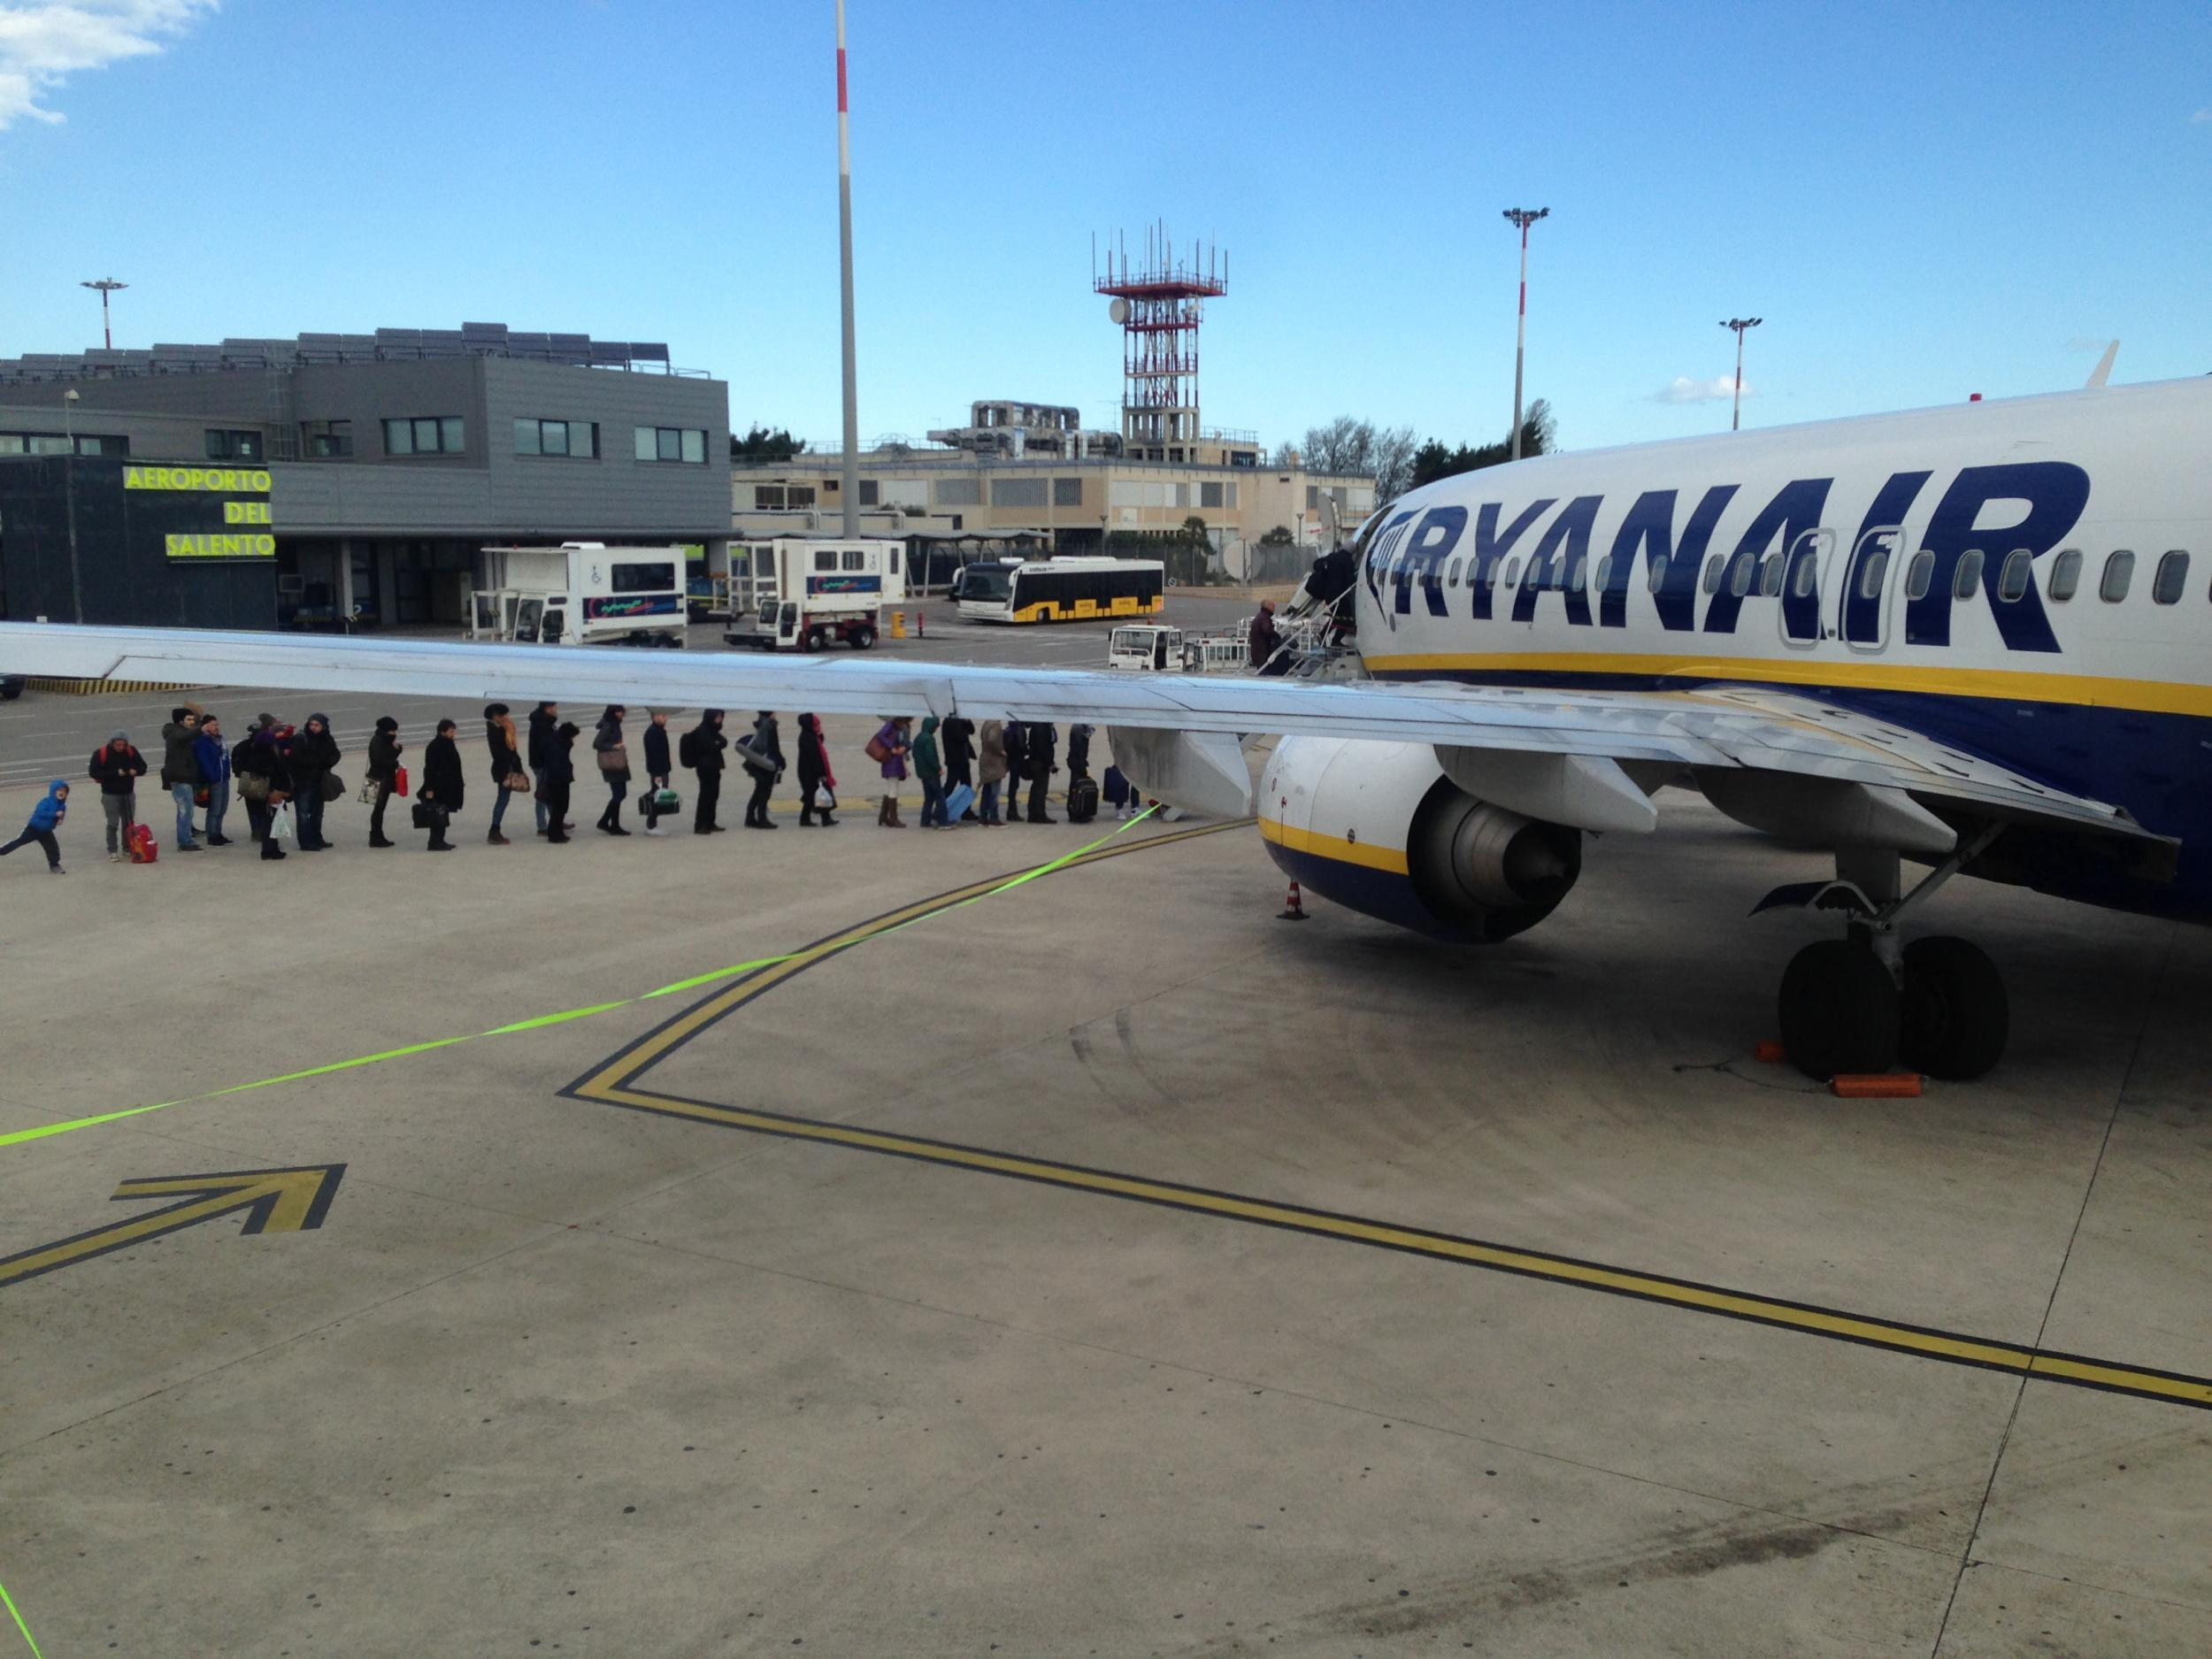 Could Ryanair S Pilotgate Spell The End Of Cheap Flights The Independent The Independent